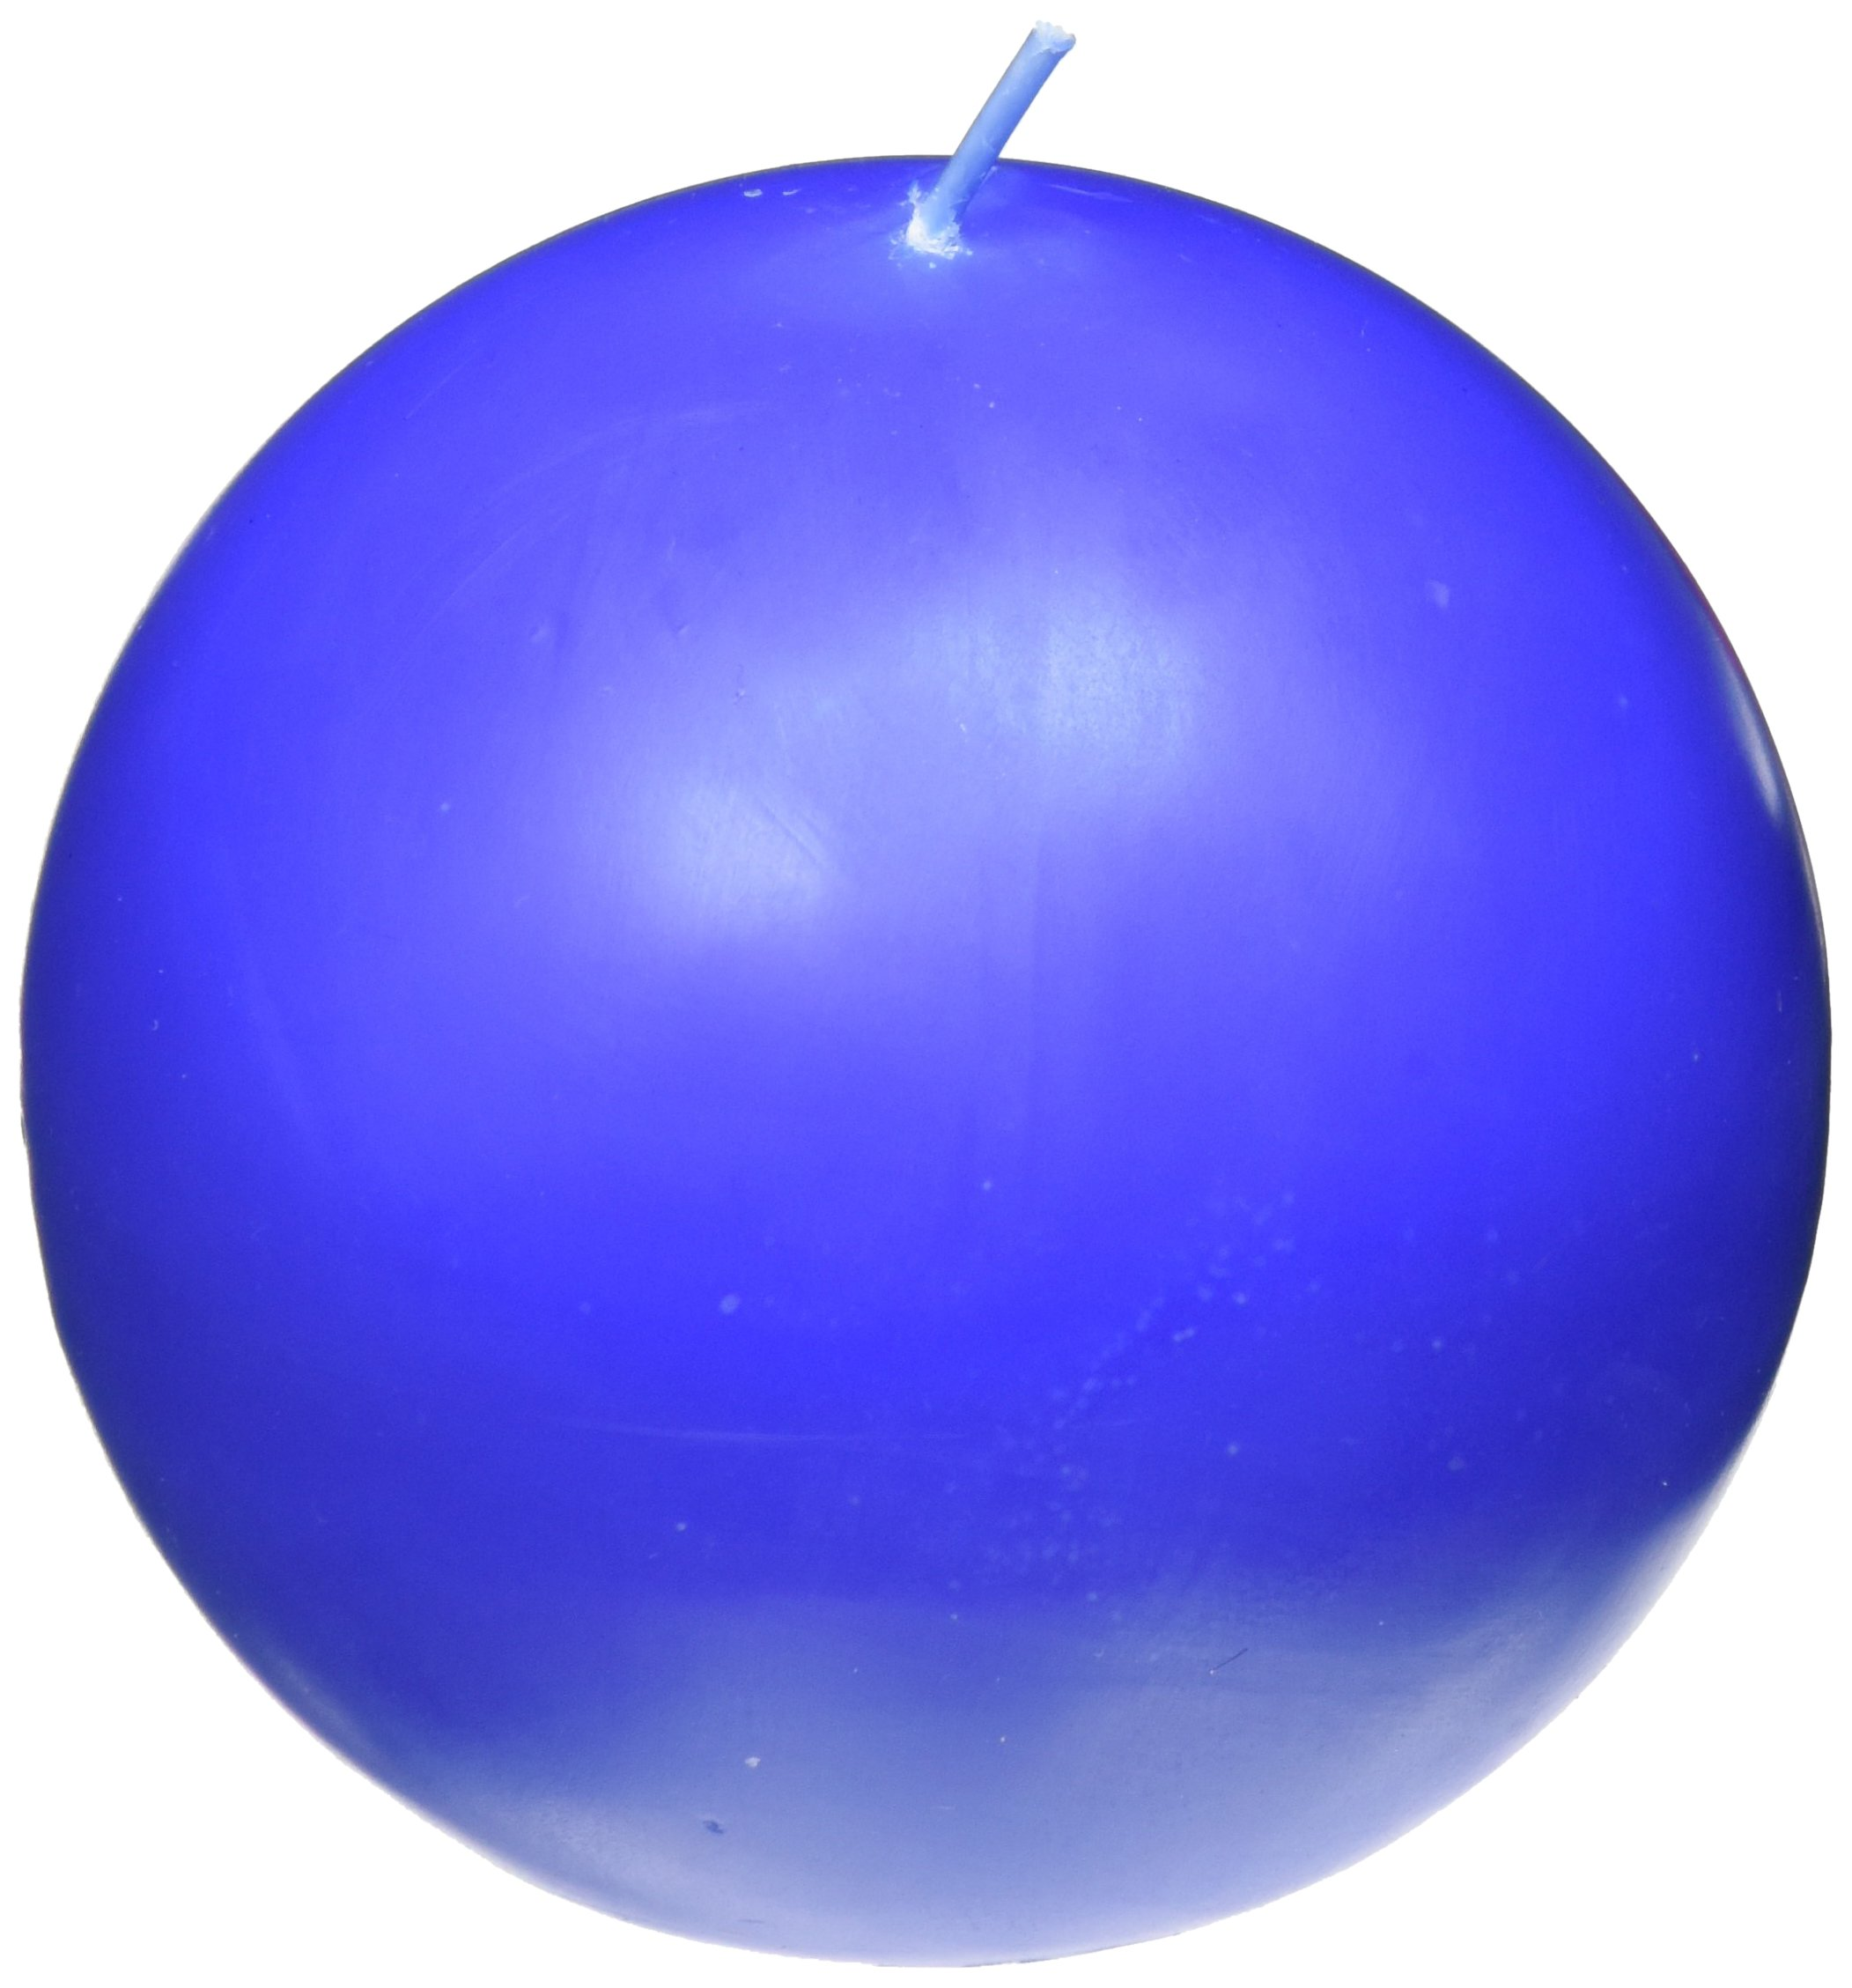 Zest Candle 2-Piece Ball Candles, 4-Inch, Blue by Zest Candle